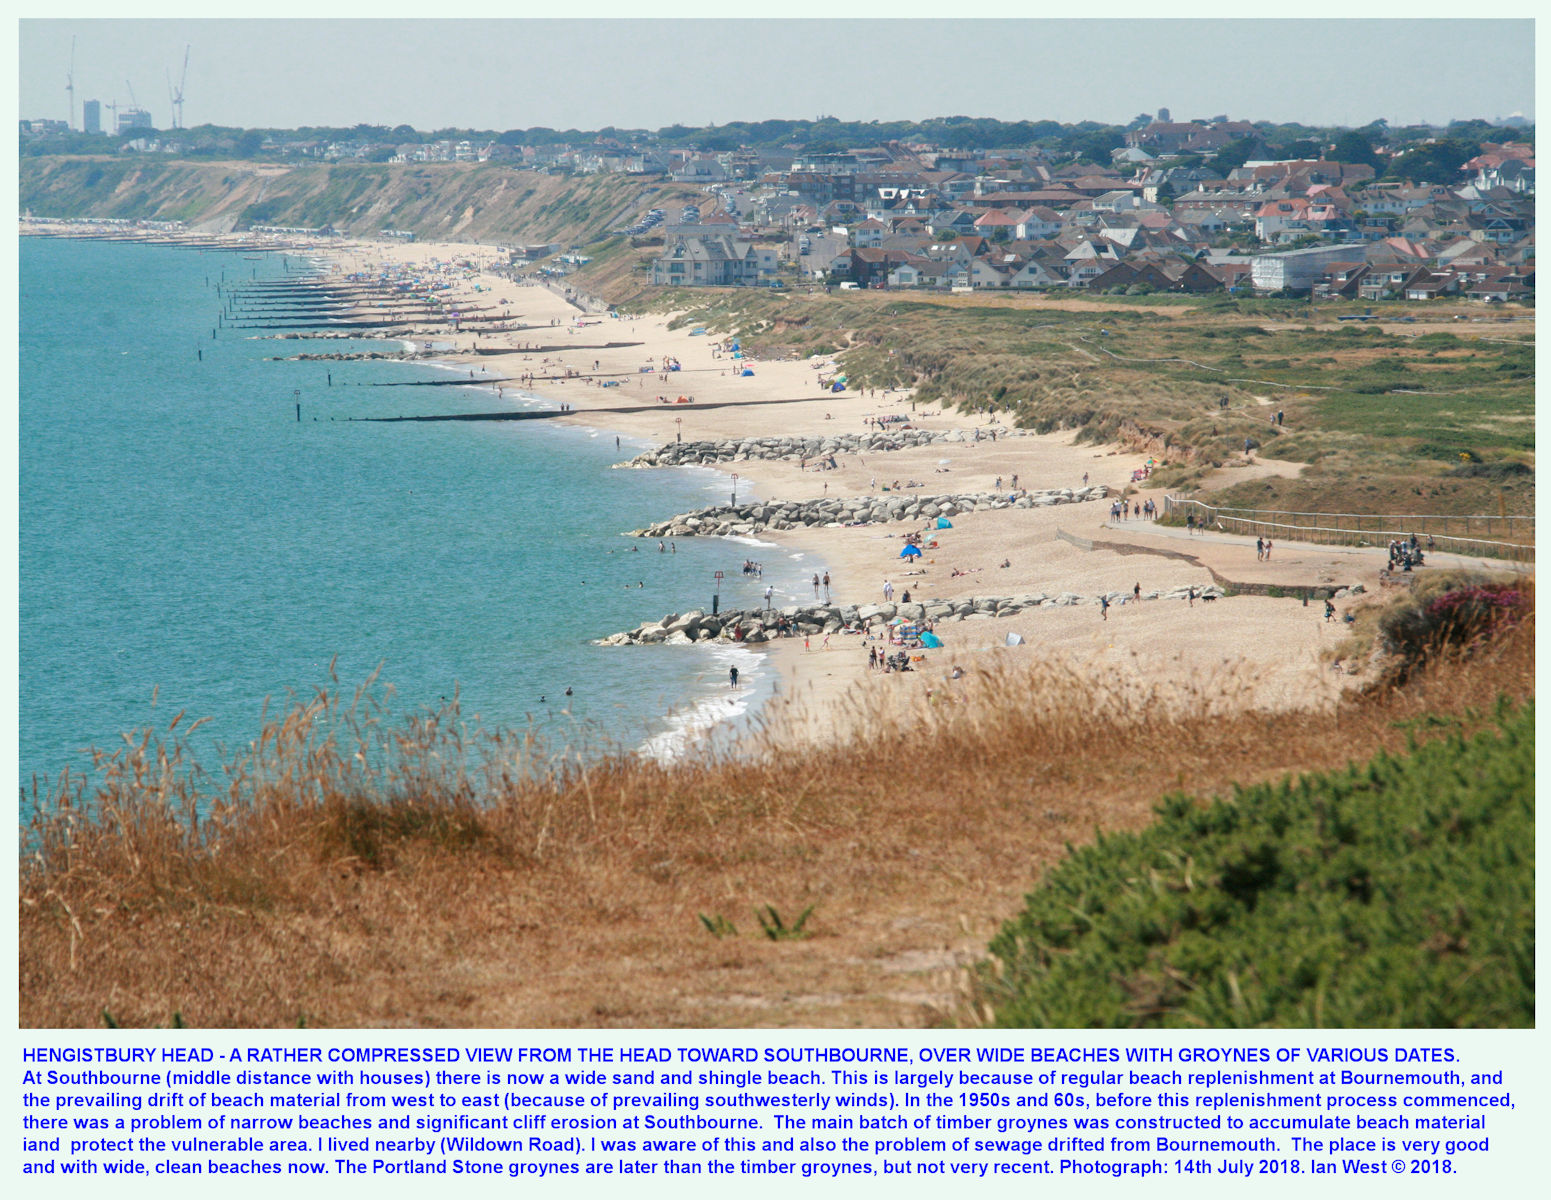 The view westward to Southbourne, with timber and stone groynes of various dates, shown as a compressed or shortened image, from the highest point of Warren Hill or Hengistbury Head, 14th July 2018